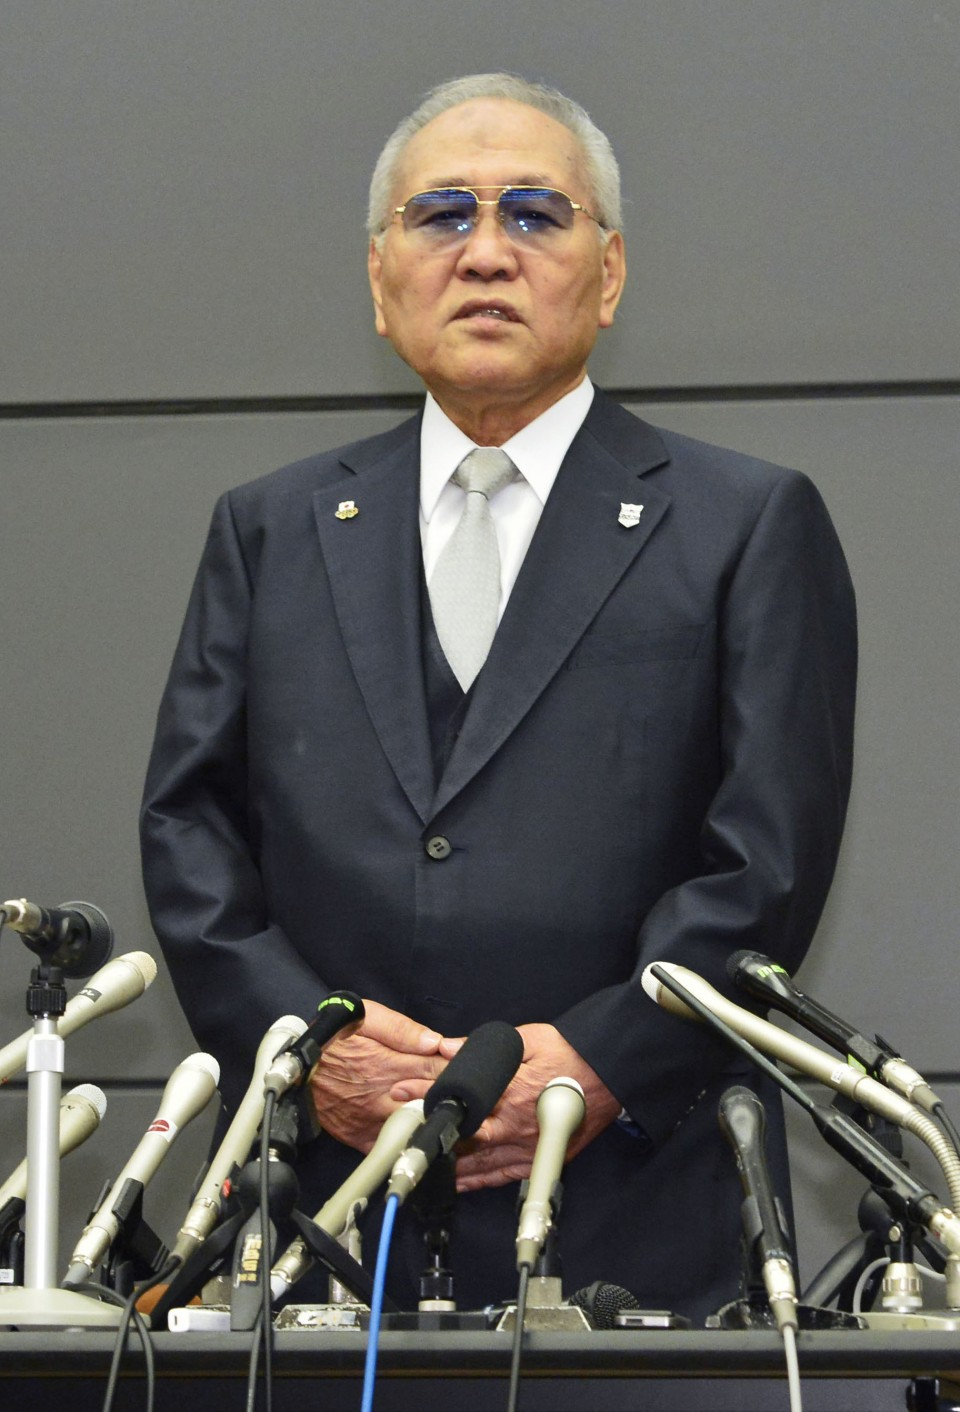 Boxing: Japan amateur body chief resigns over allegations of misconduct